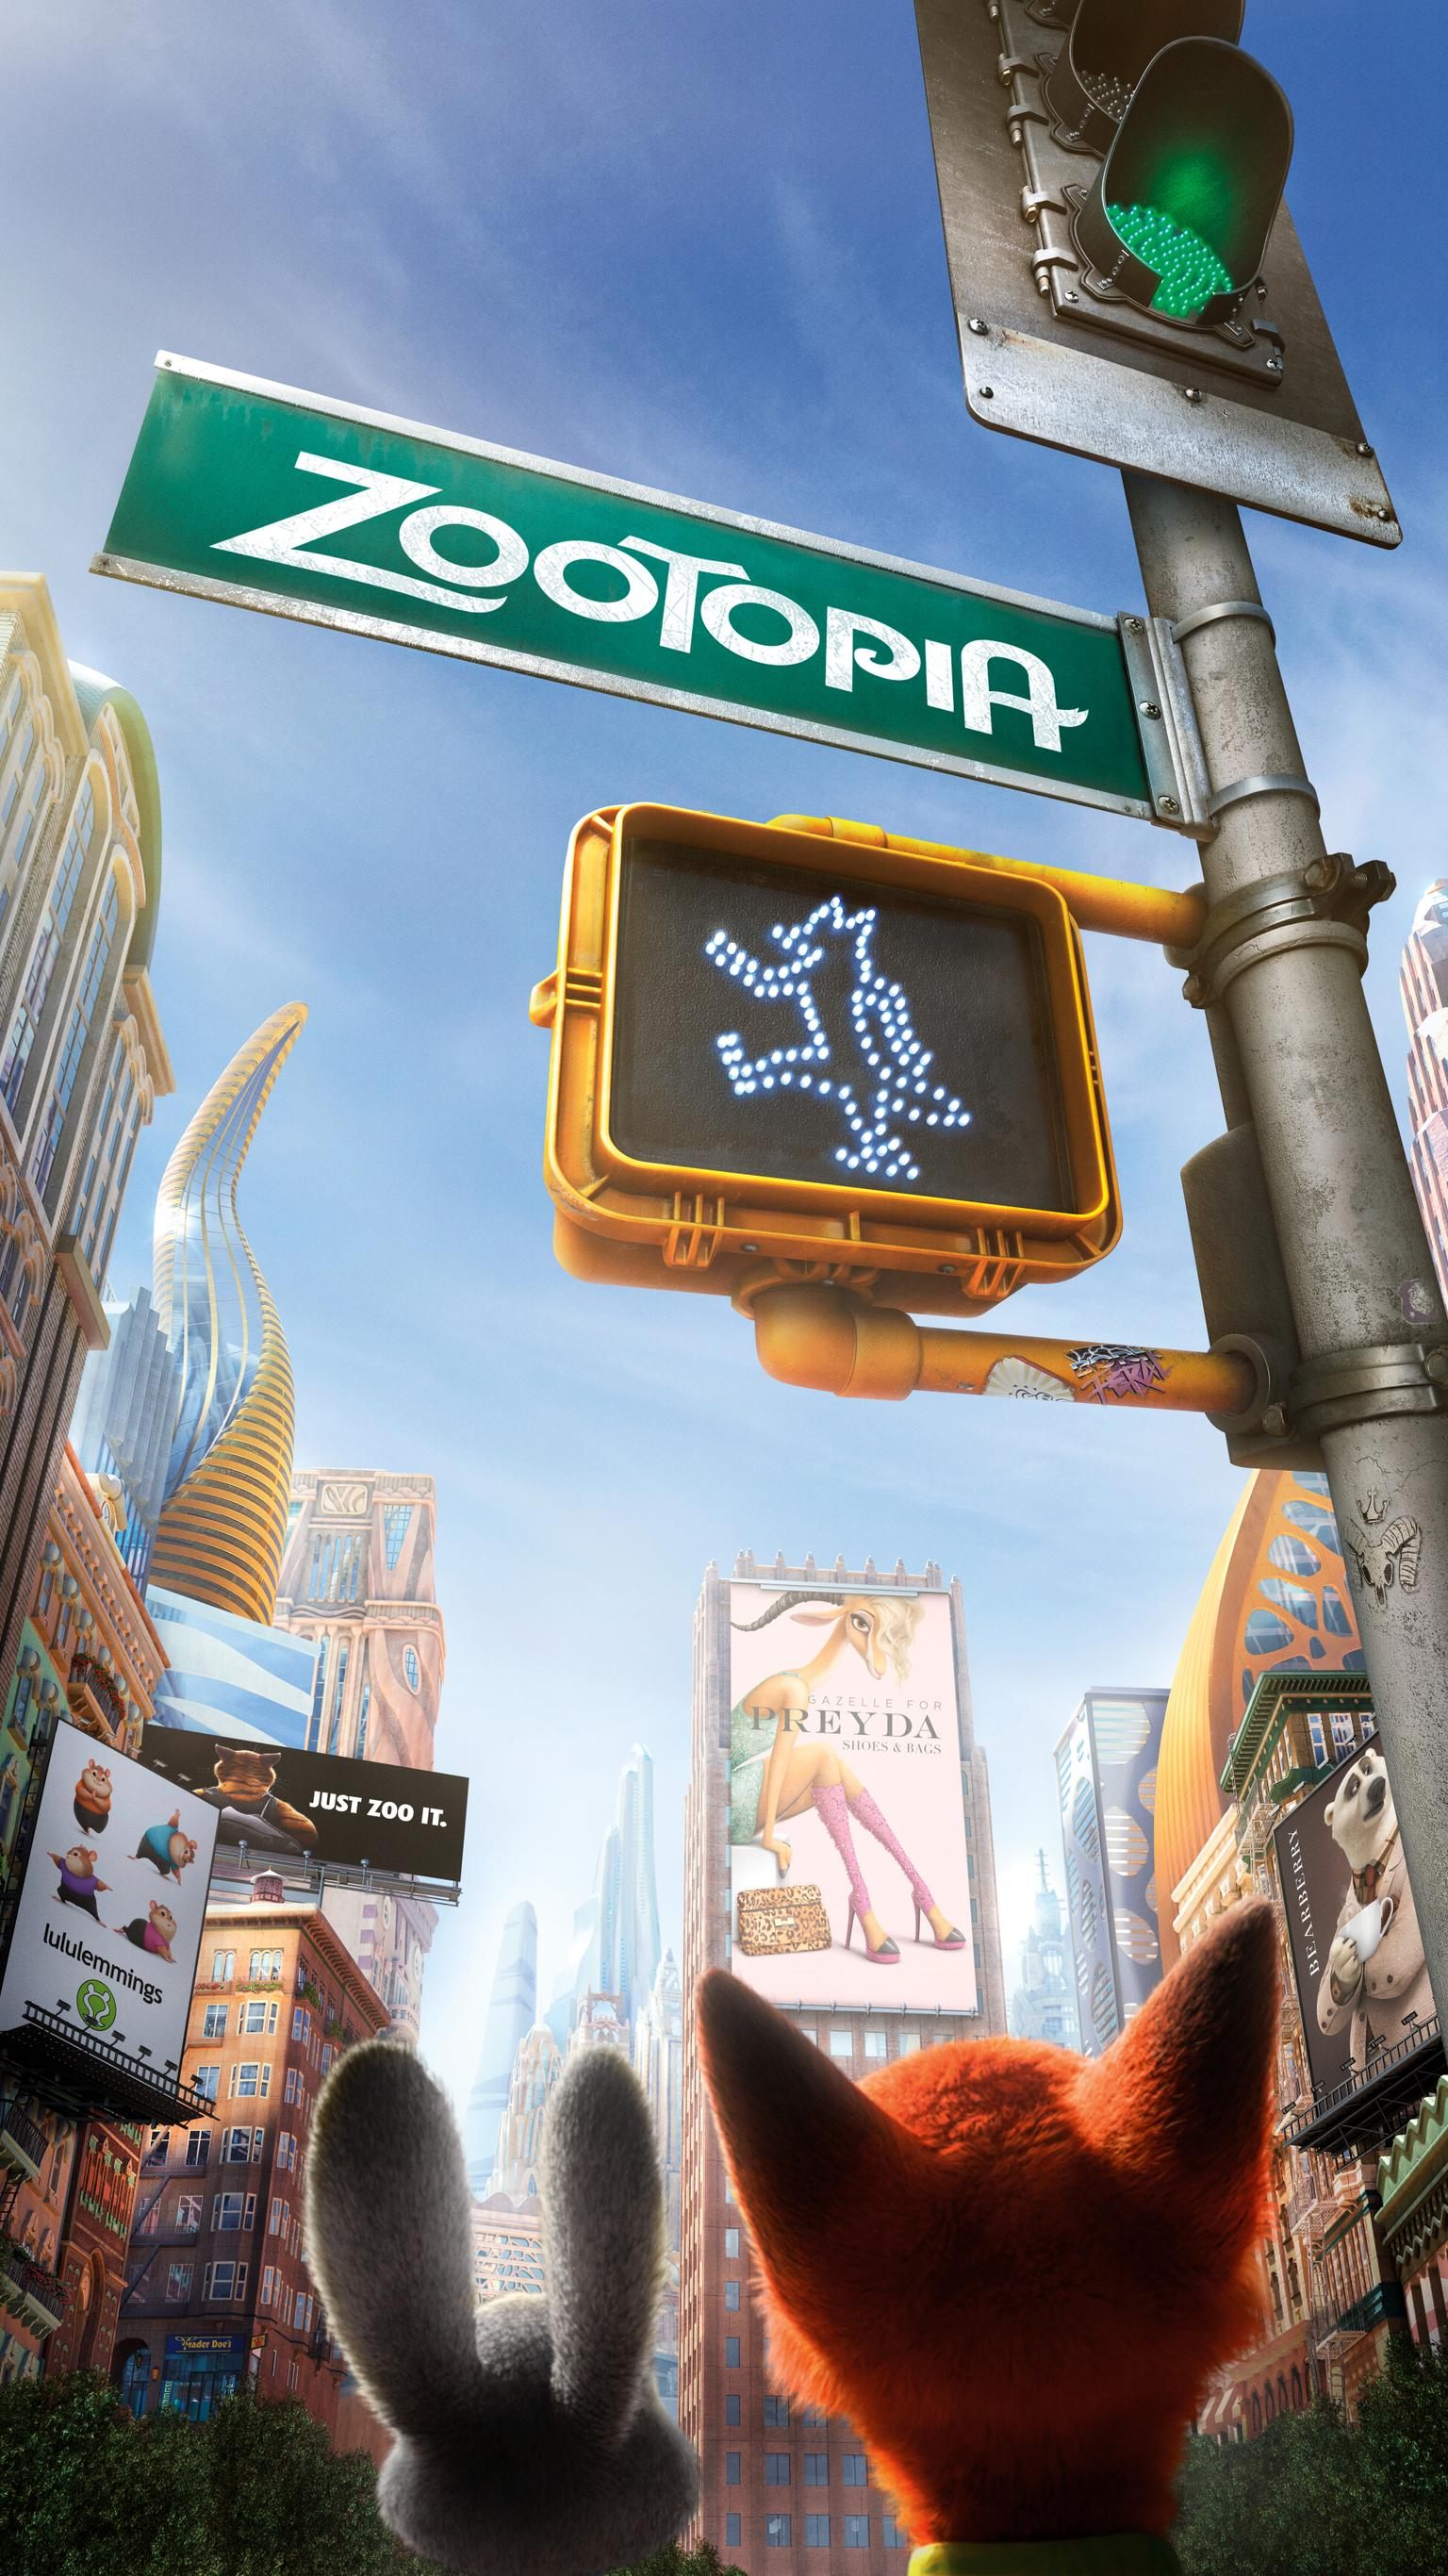 Zootopia Wallpaper Posted By Samantha Peltier